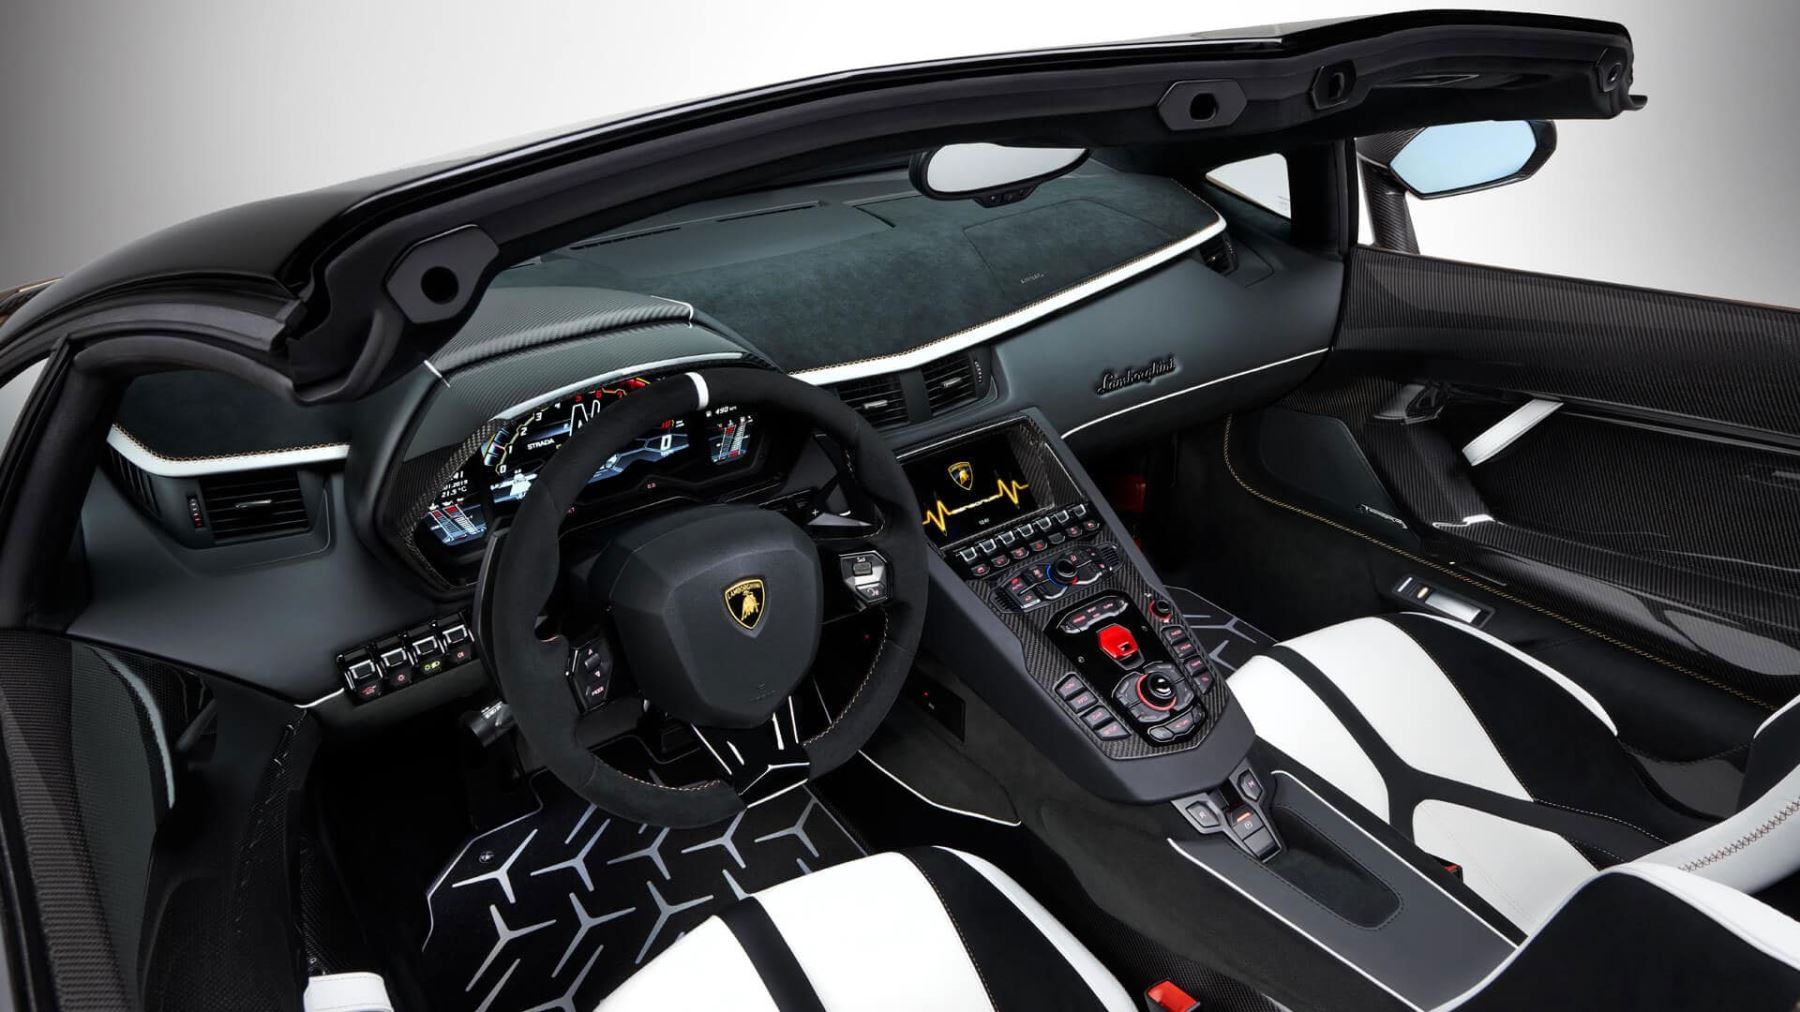 Lamborghini Aventador SVJ Roadster - Real emotions shape the future image 8